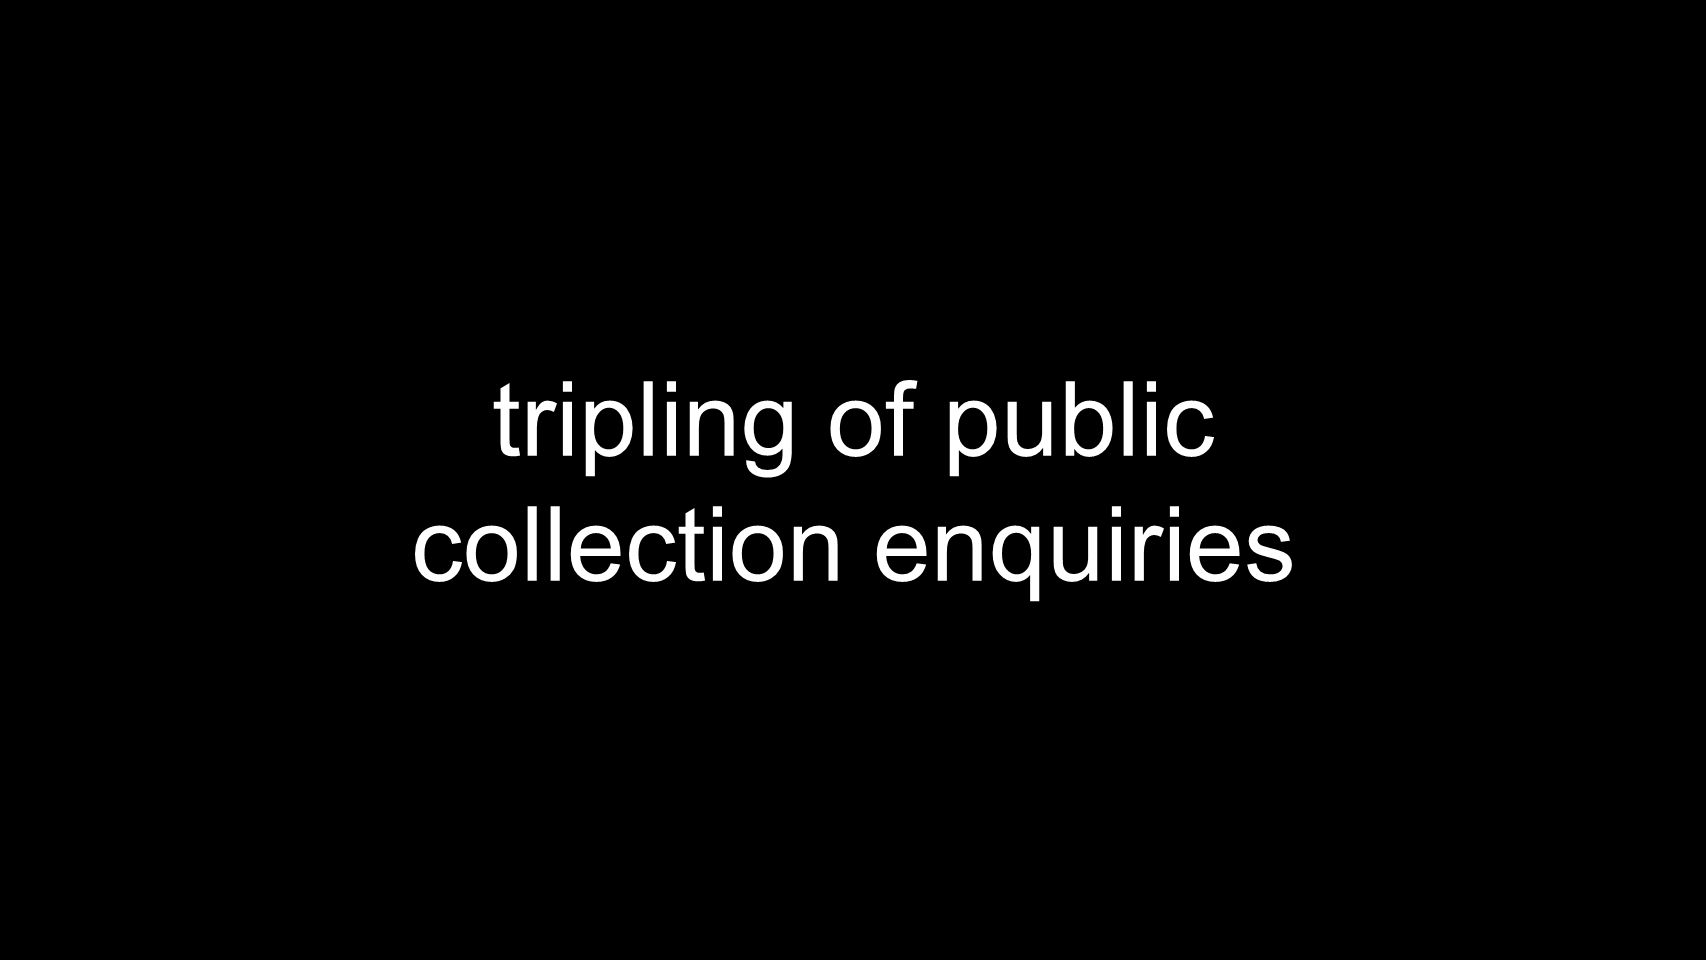 tripling of public collection enquiries